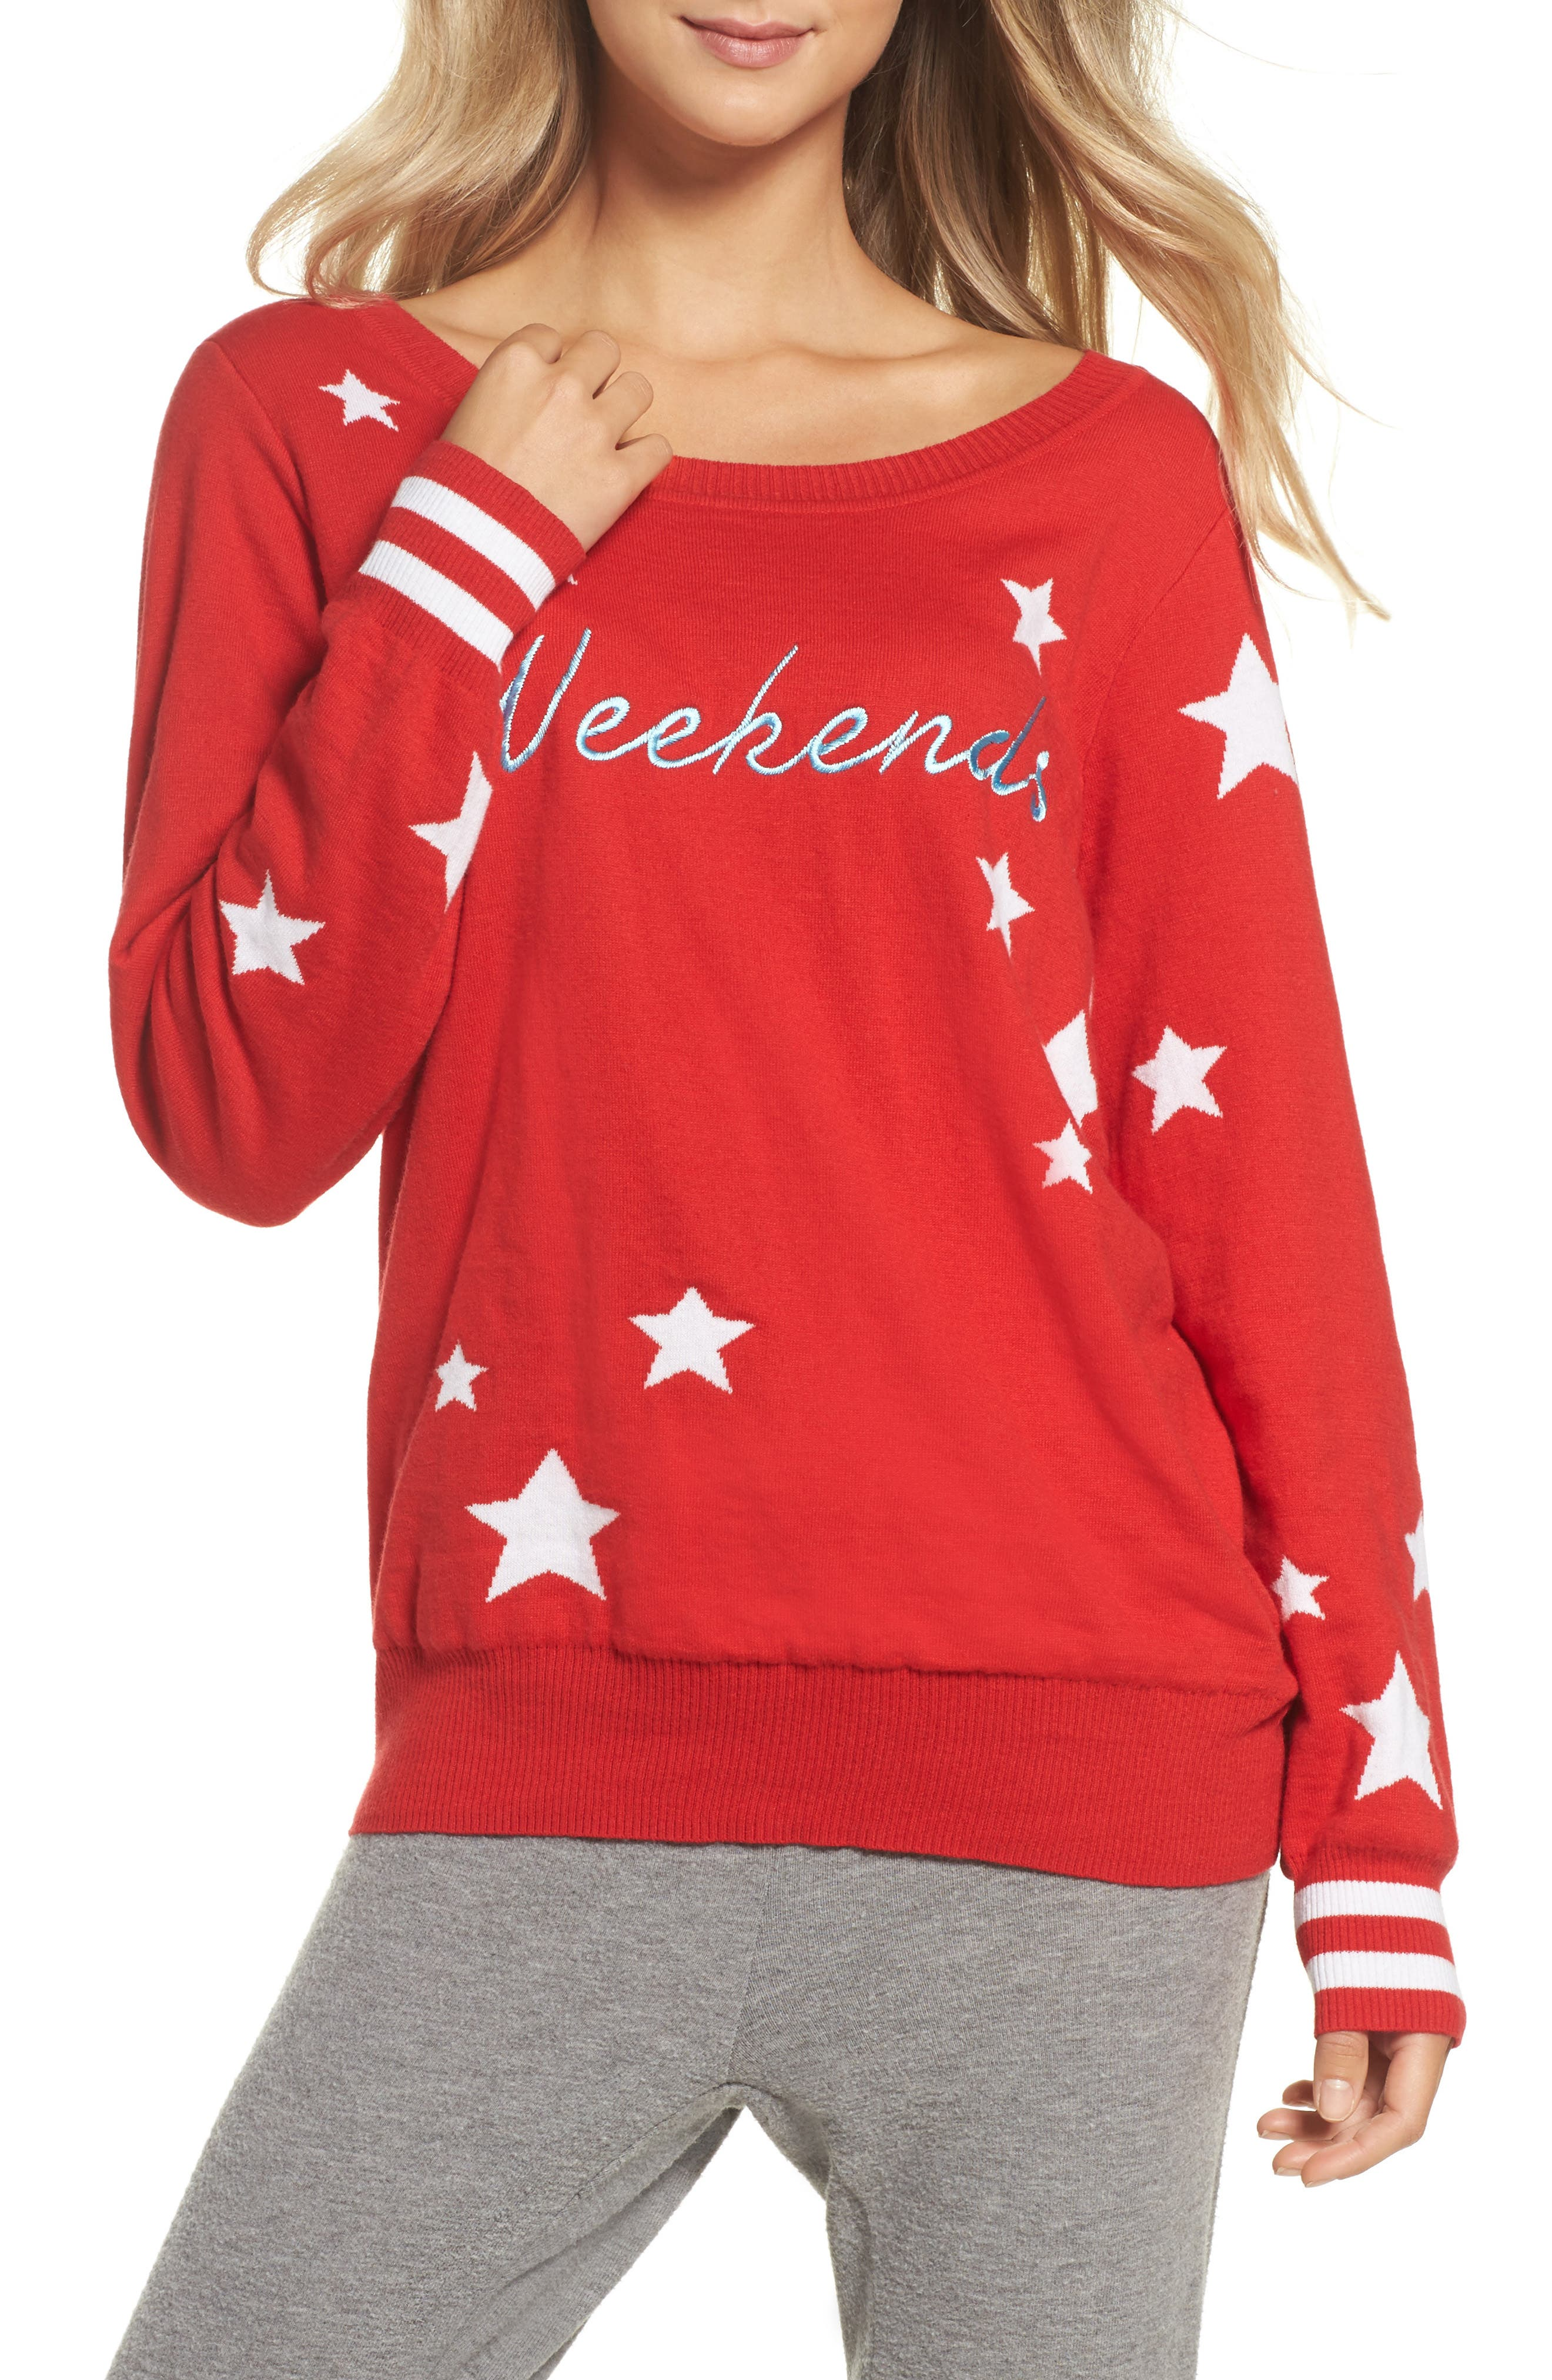 Weekends Intarsia Sweater,                         Main,                         color,